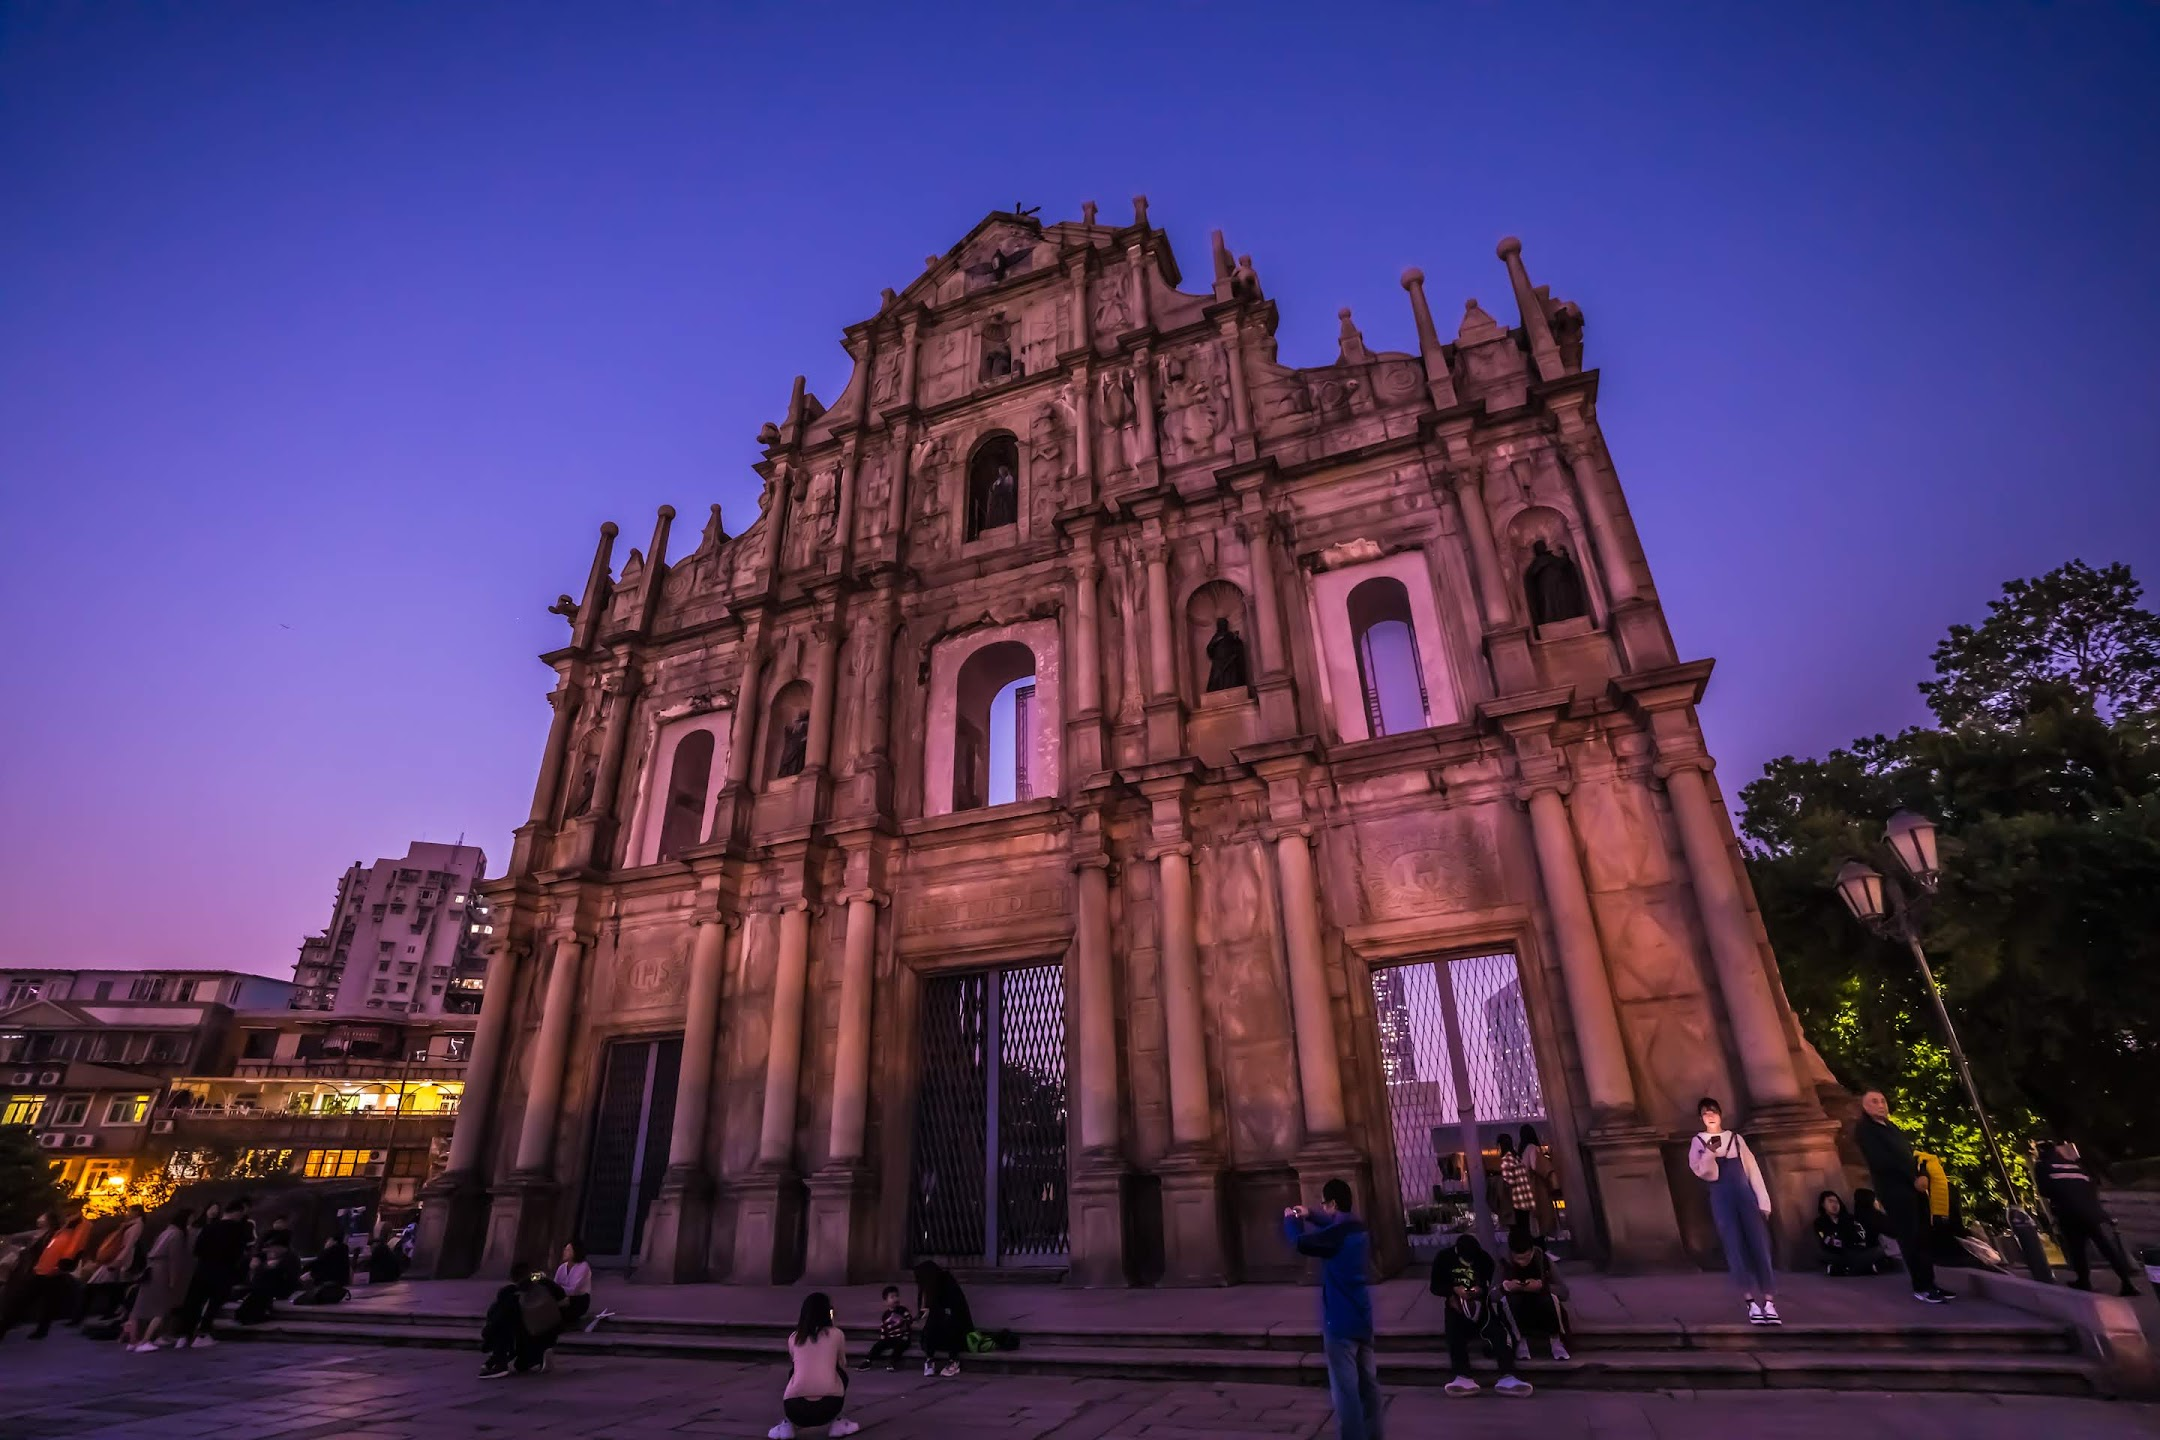 Macau Ruins of St. Paul's evening3